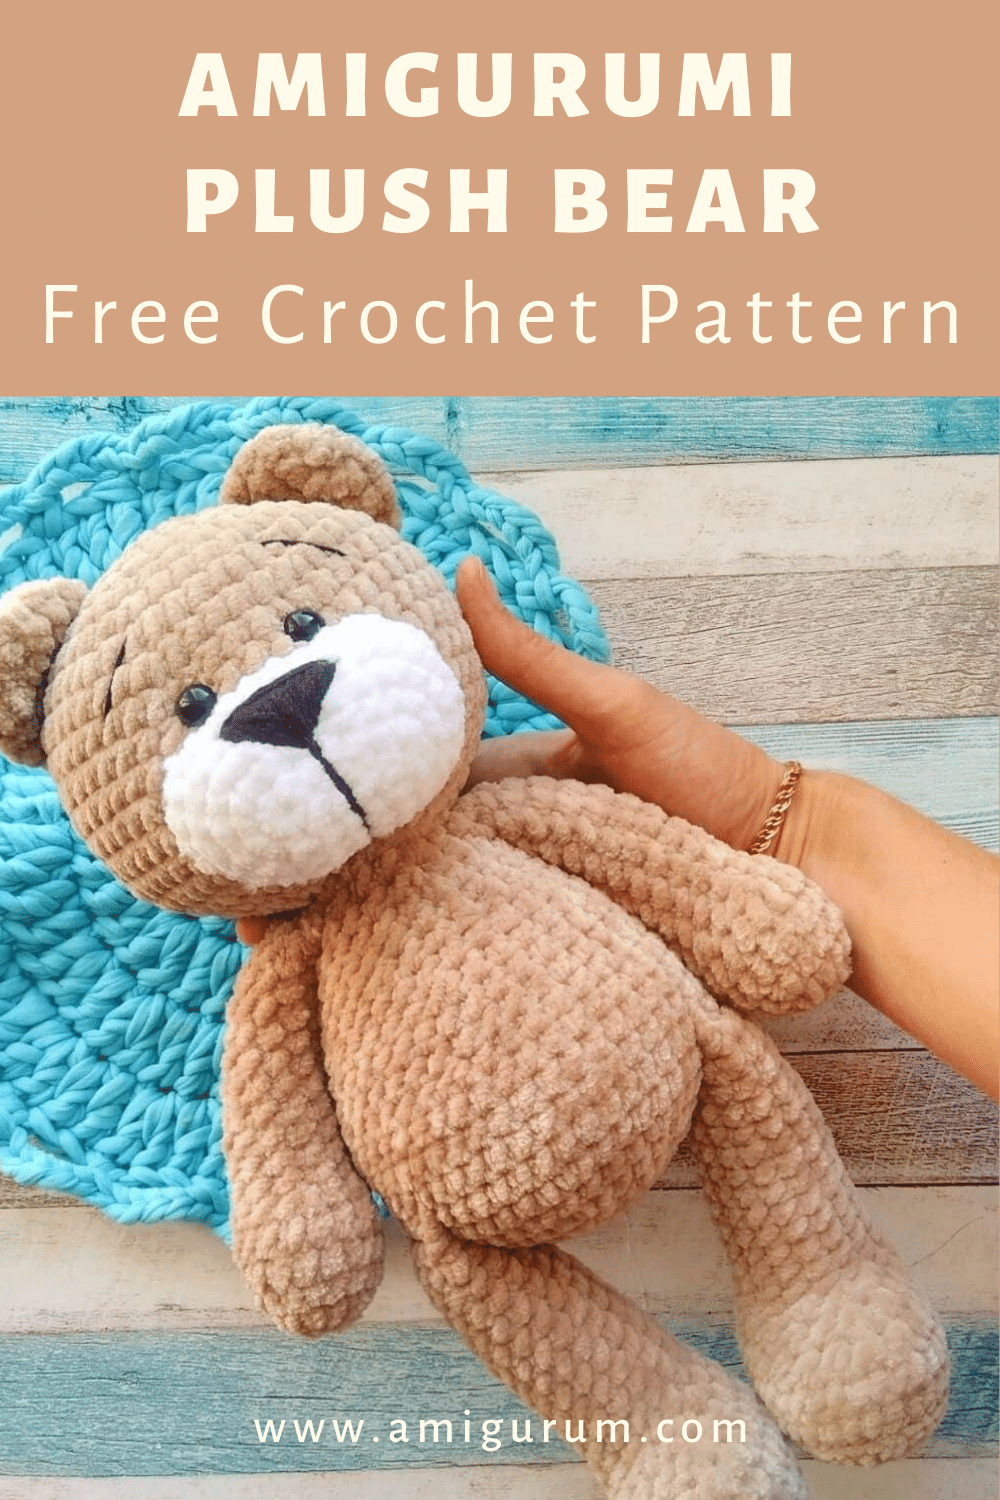 FREE plush bear pattern